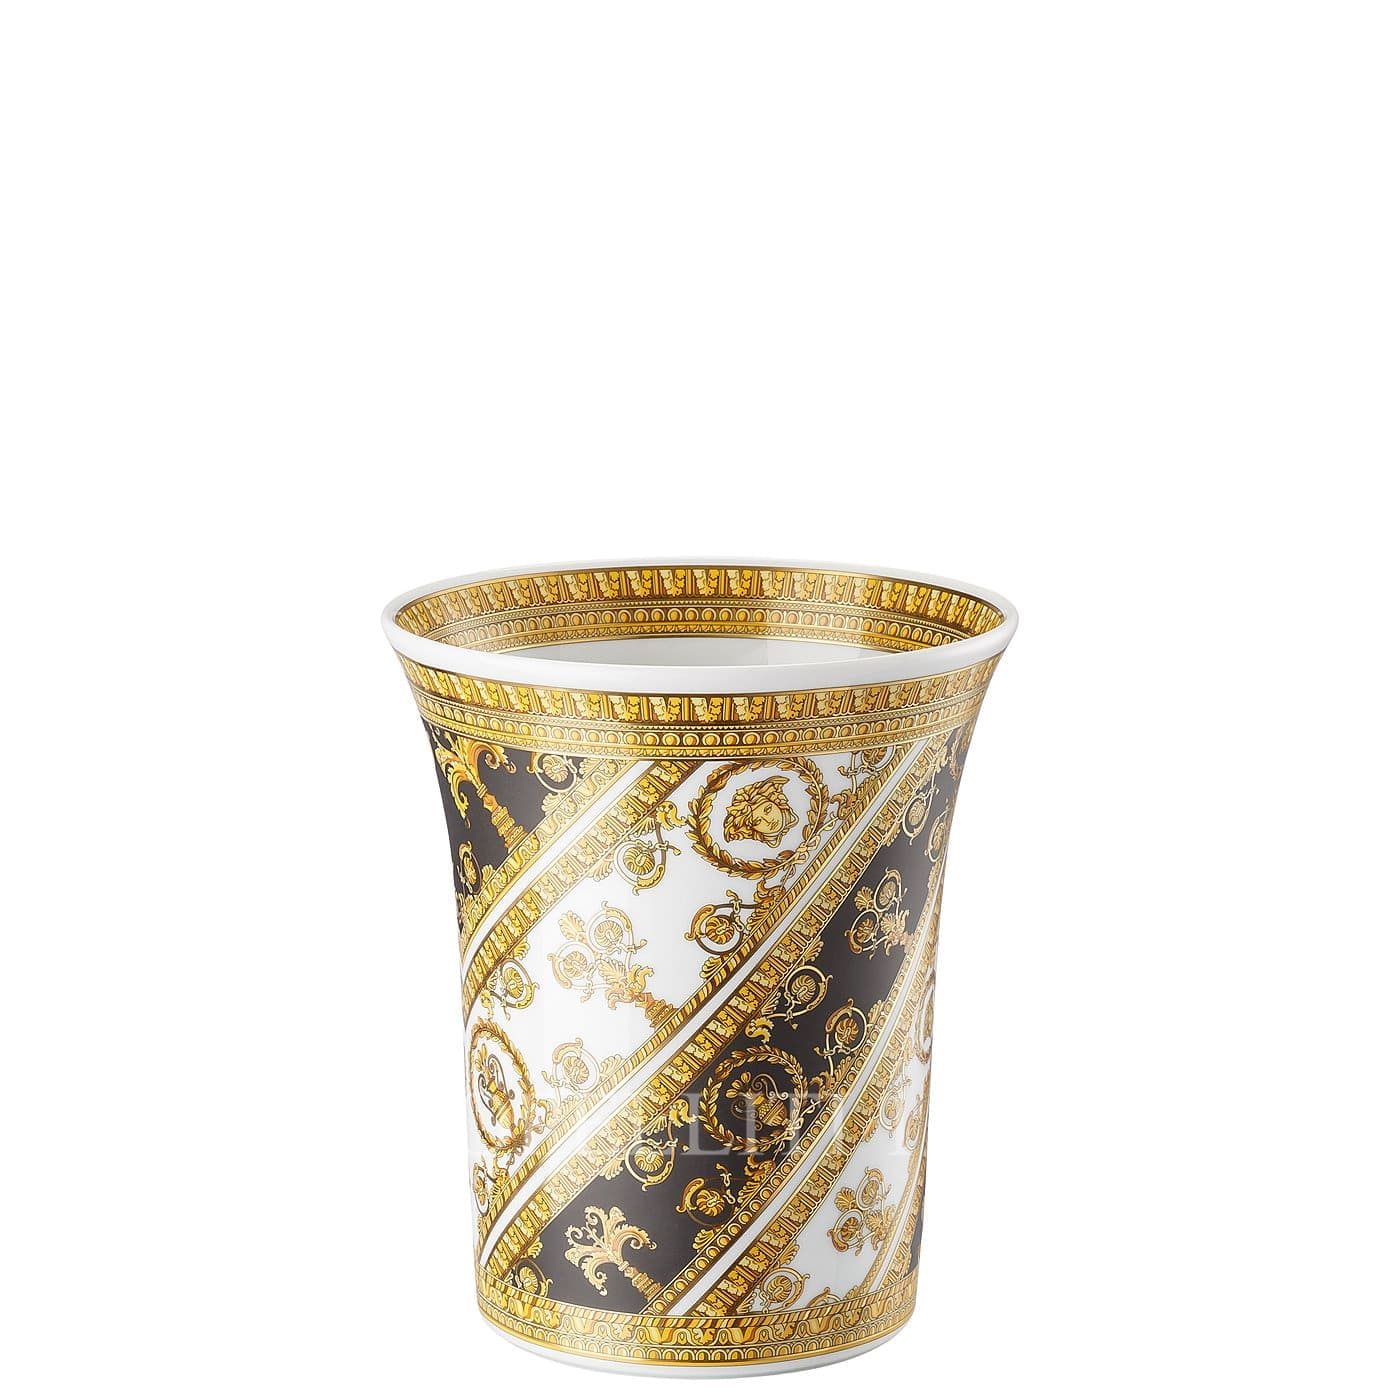 versace italian design i love baroque vase golden small